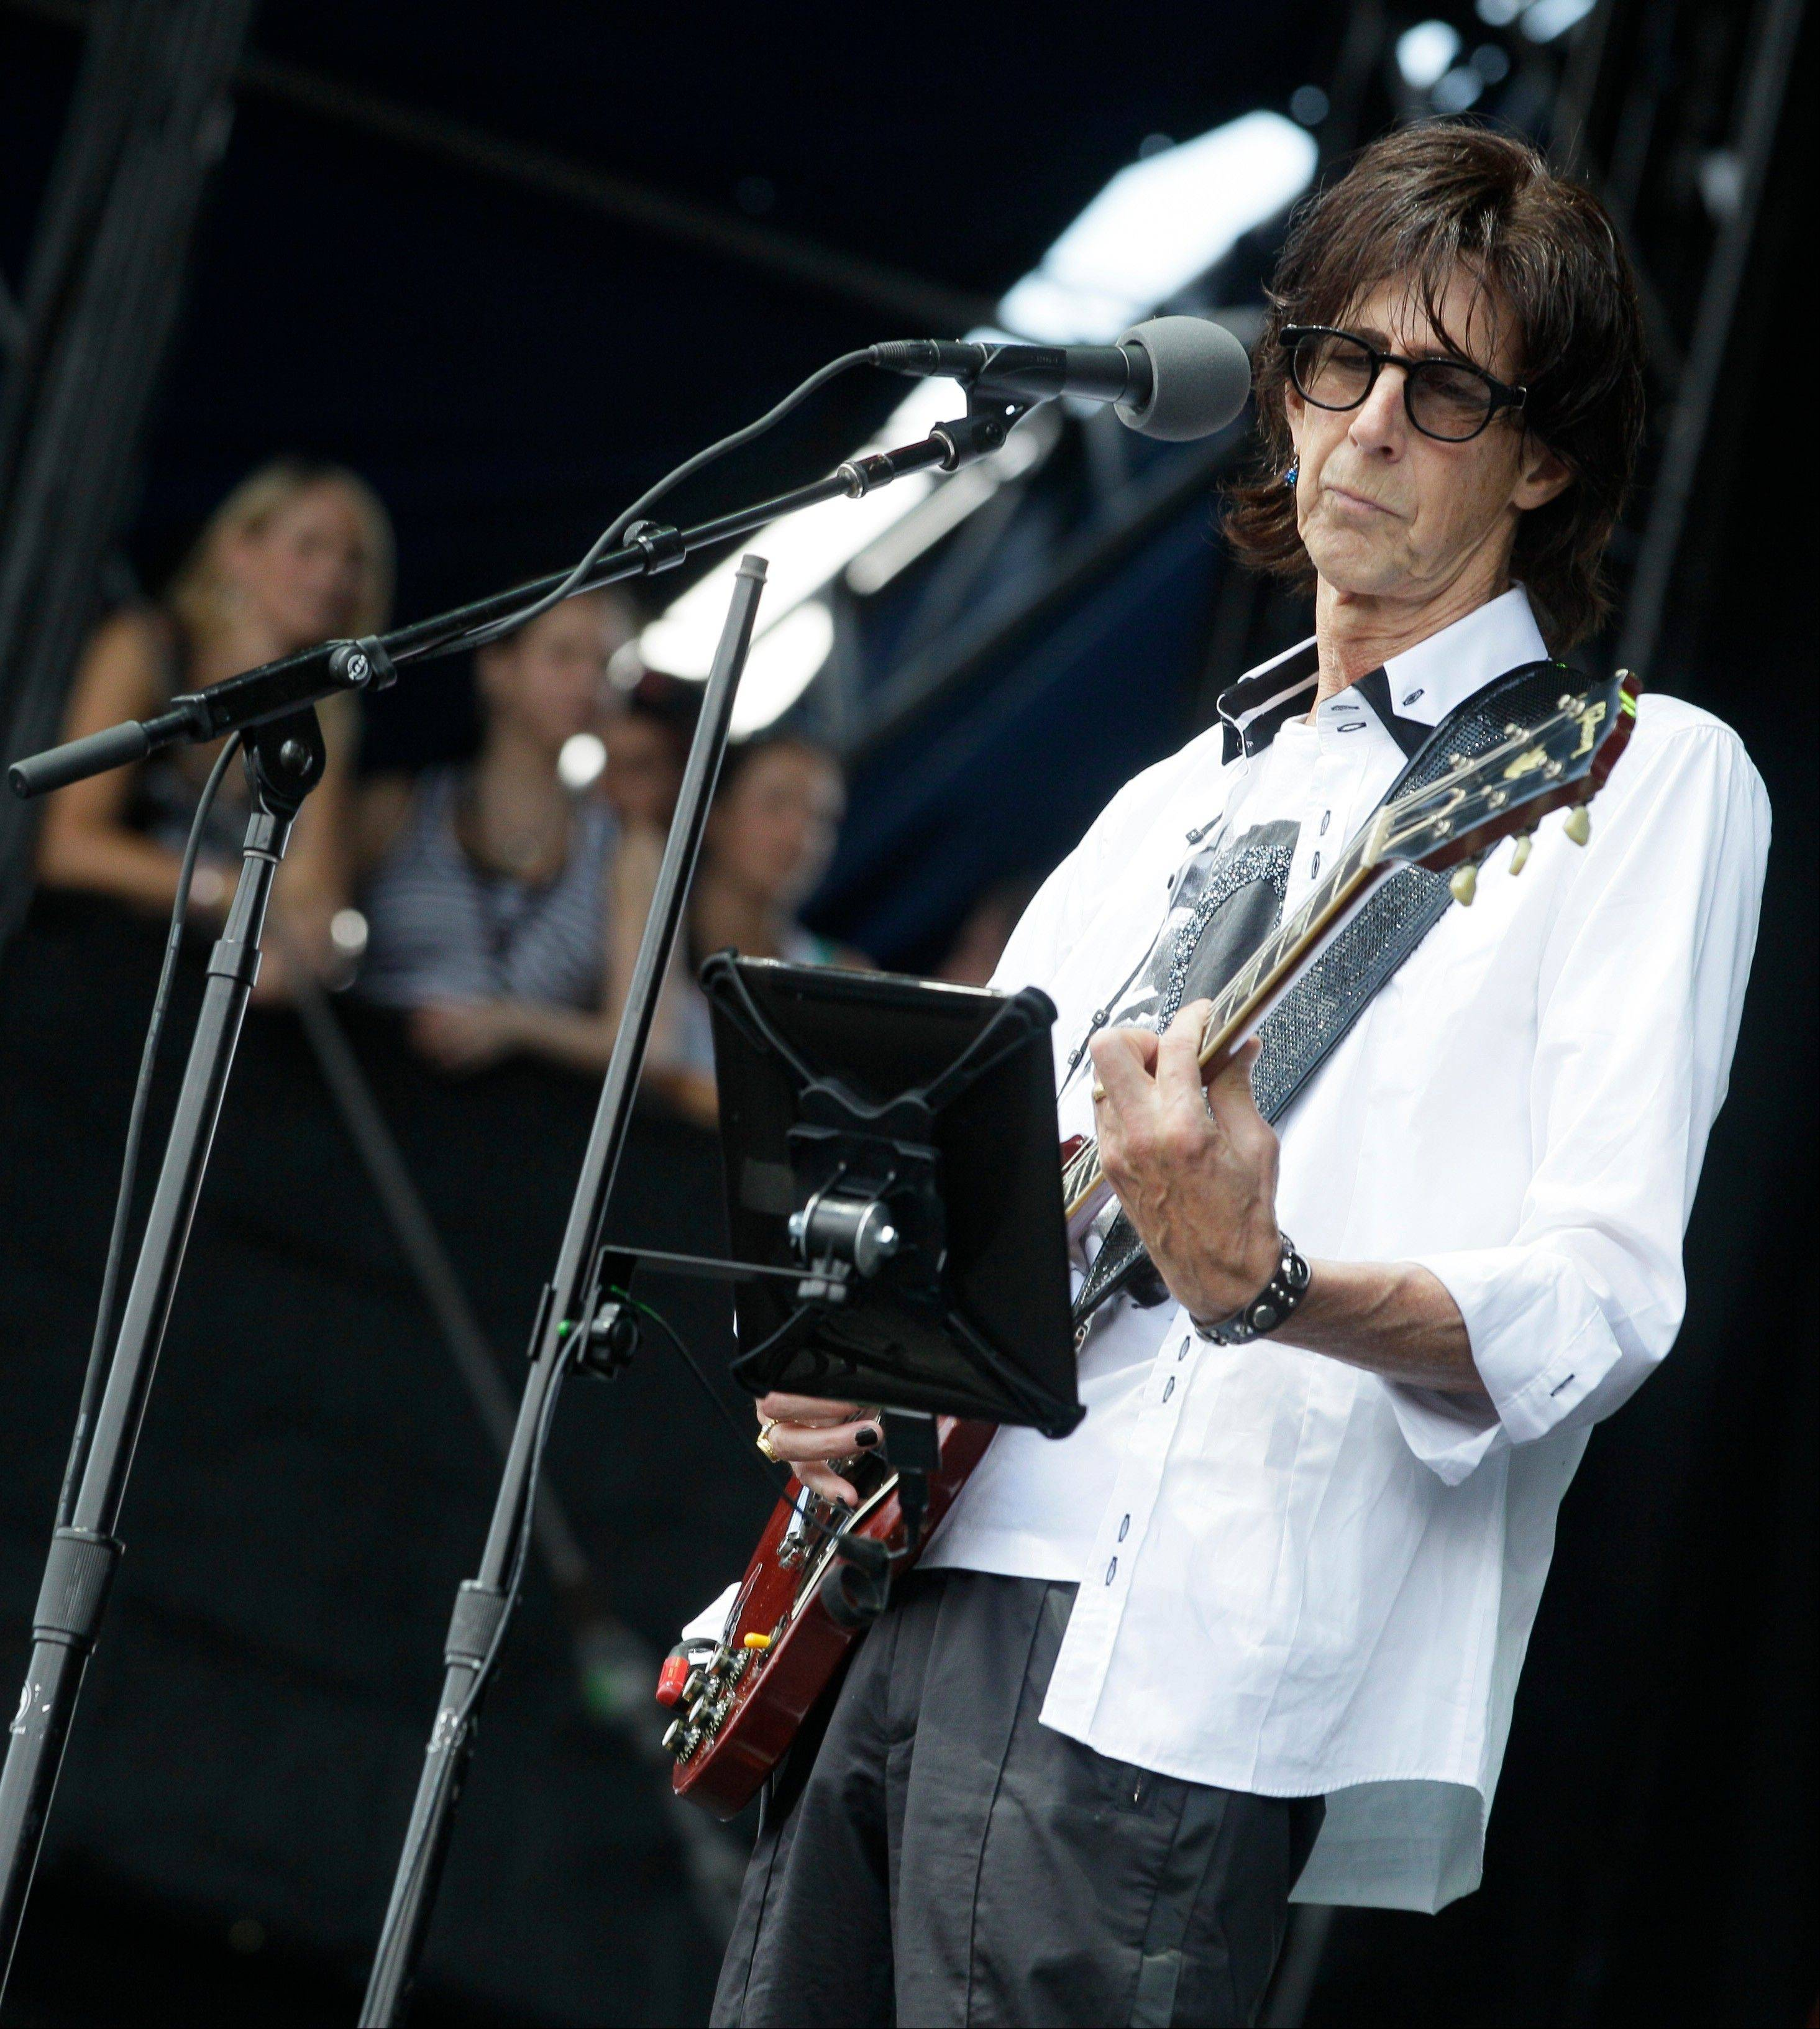 The Cars lead singer Ric Ocasek performs during the Lollapalooza music festival at Grant Park in Chicago, Sunday, Aug. 7, 2011.